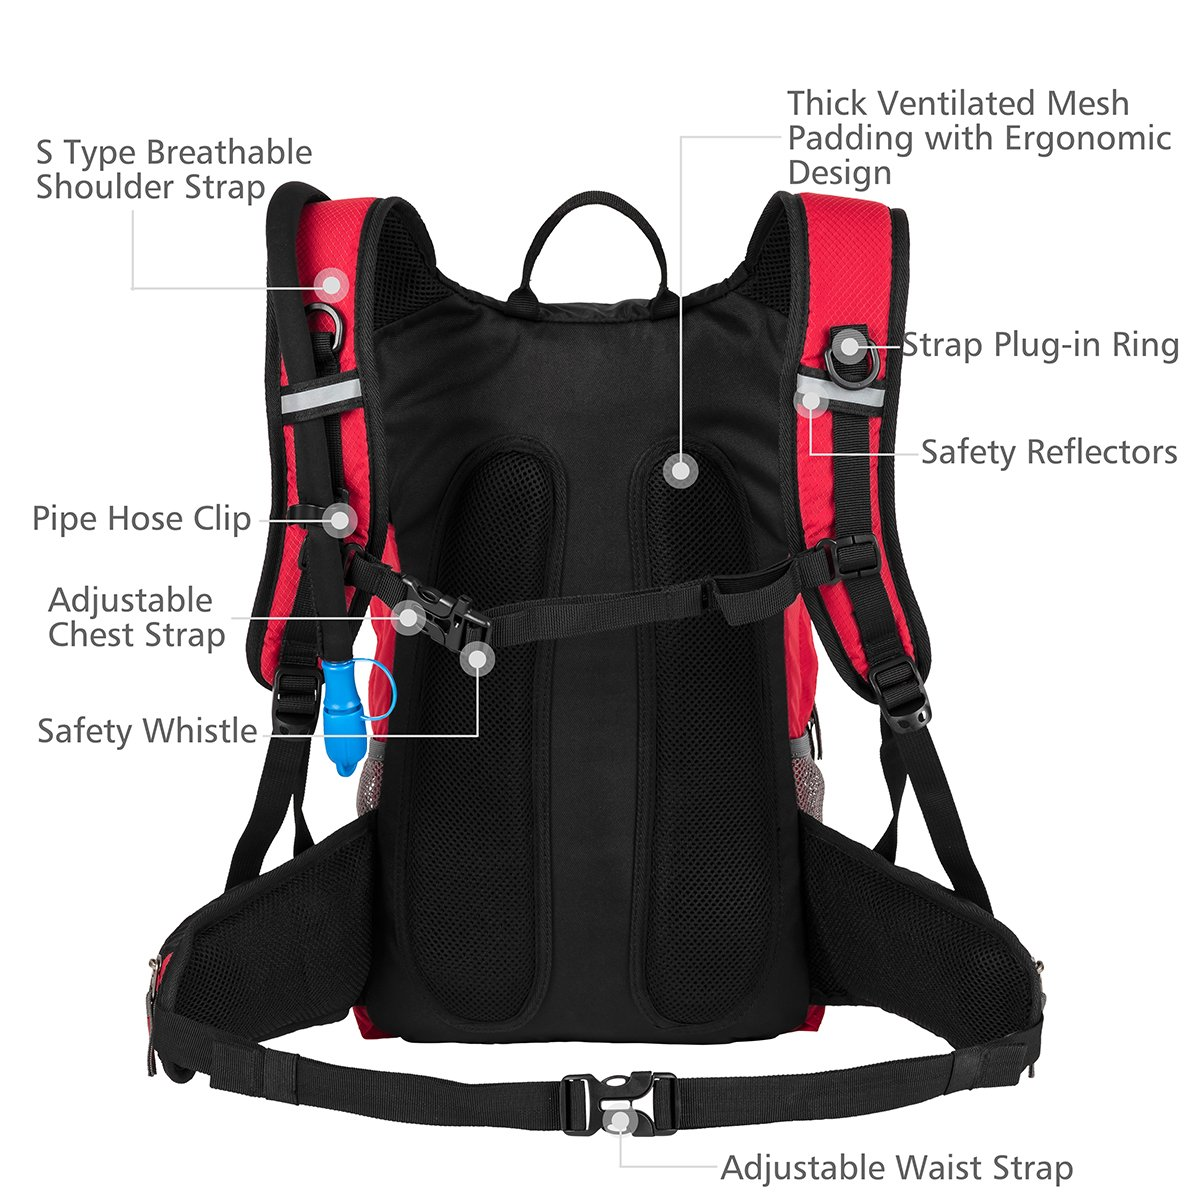 Fits Men 18L Women RUPUMPACK Insulated Hydration Backpack Pack with 2.5L BPA Free Bladder School Commuter Lightweight Daypack Water Backpack for Hiking Running Cycling Camping Kids